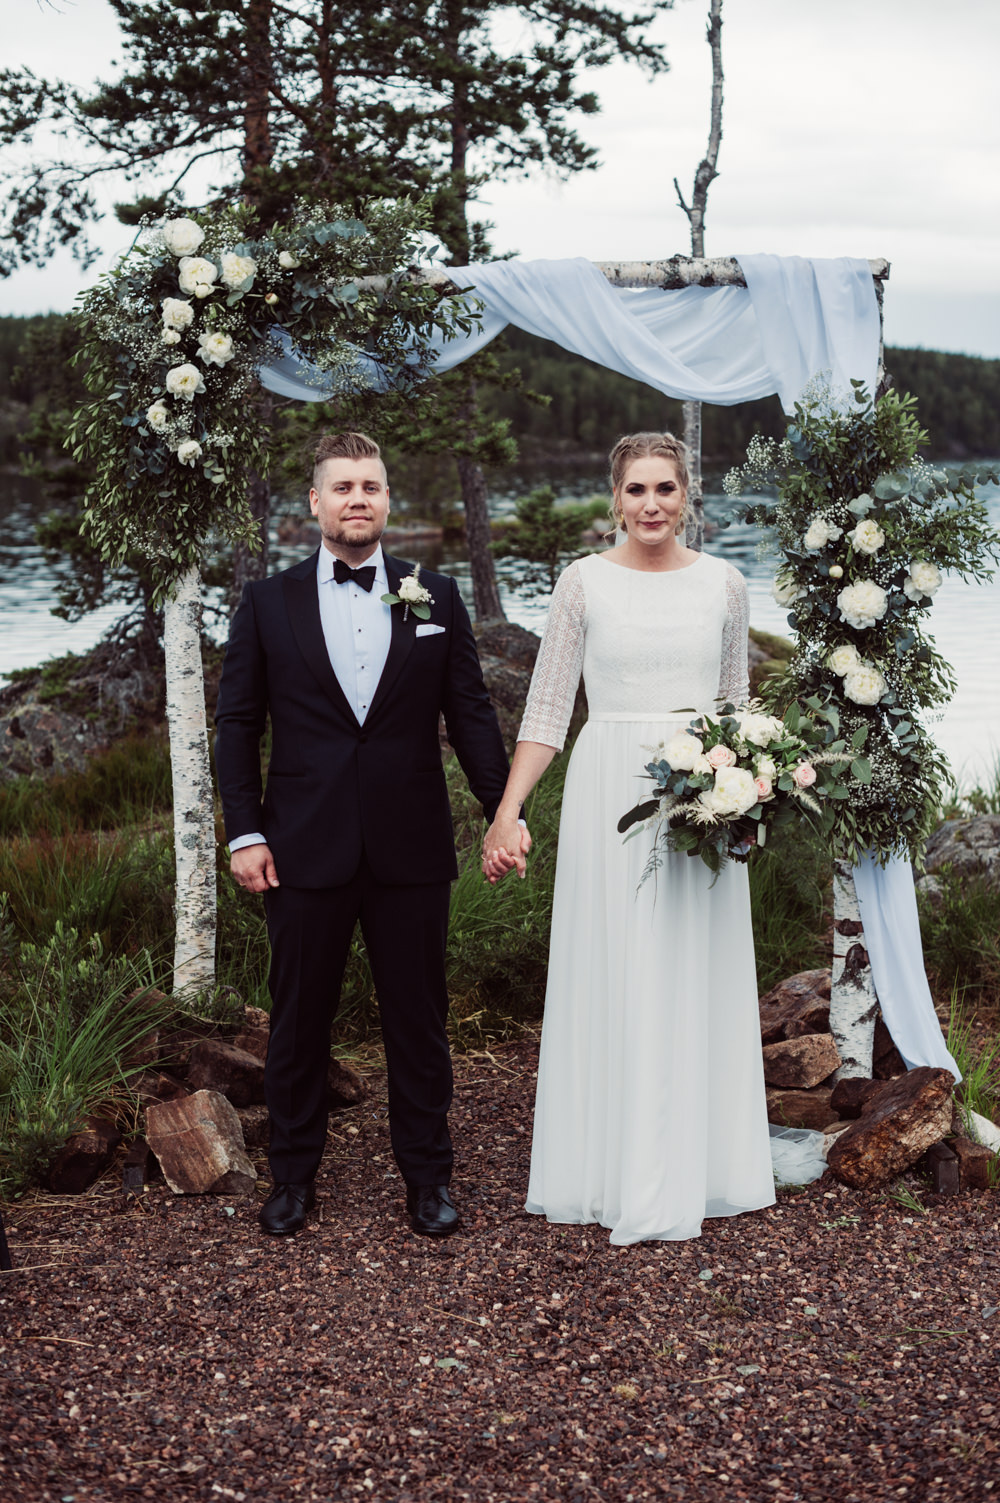 Norway Wedding Maximilian Photography Outdoor Ceremony Backdrop Flower Arch Fabric Greenery Foliage Aisle